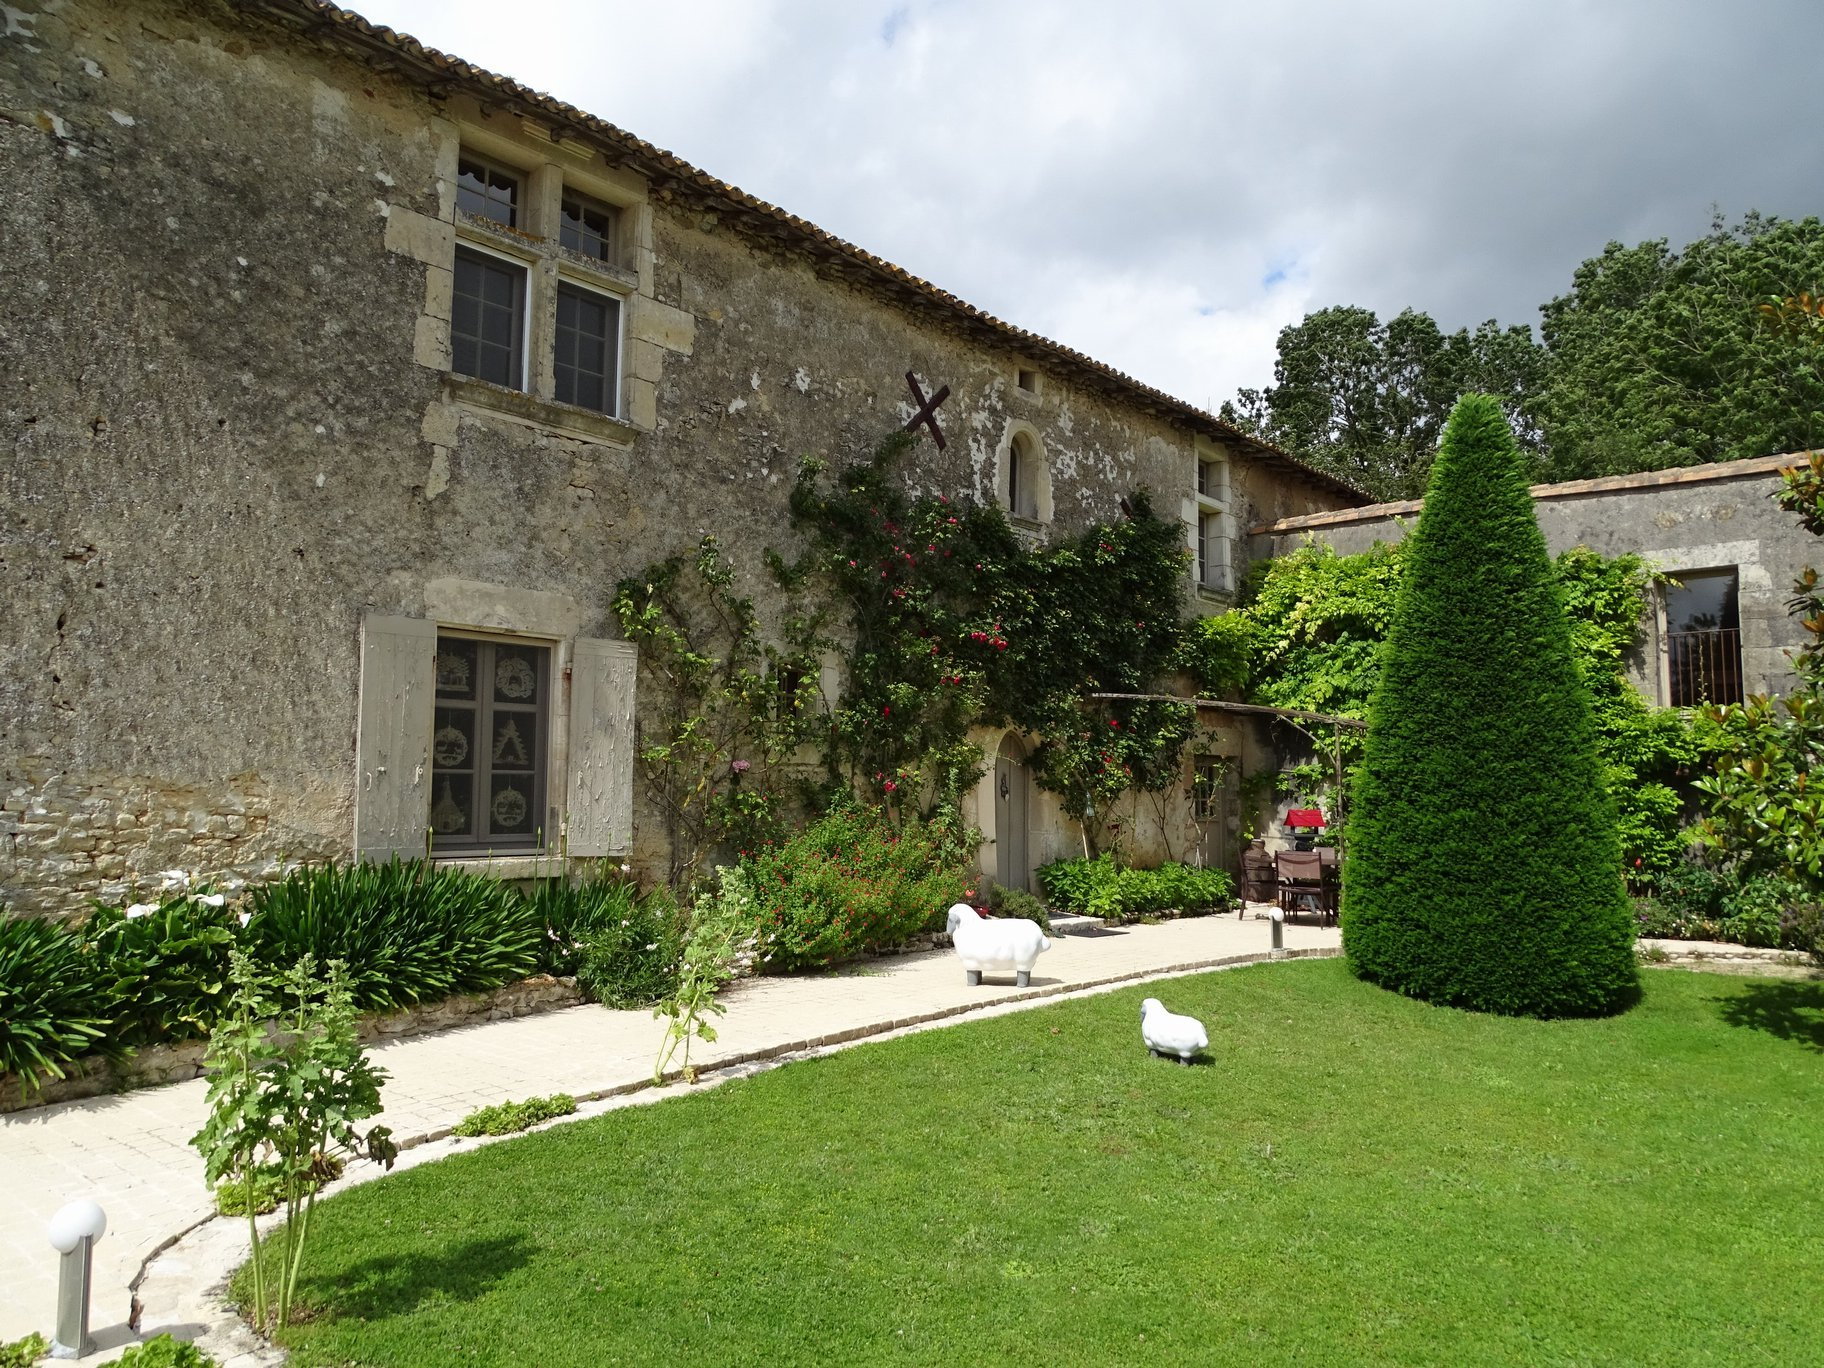 15th/16th century 4 bedroom Logis beautifully restored